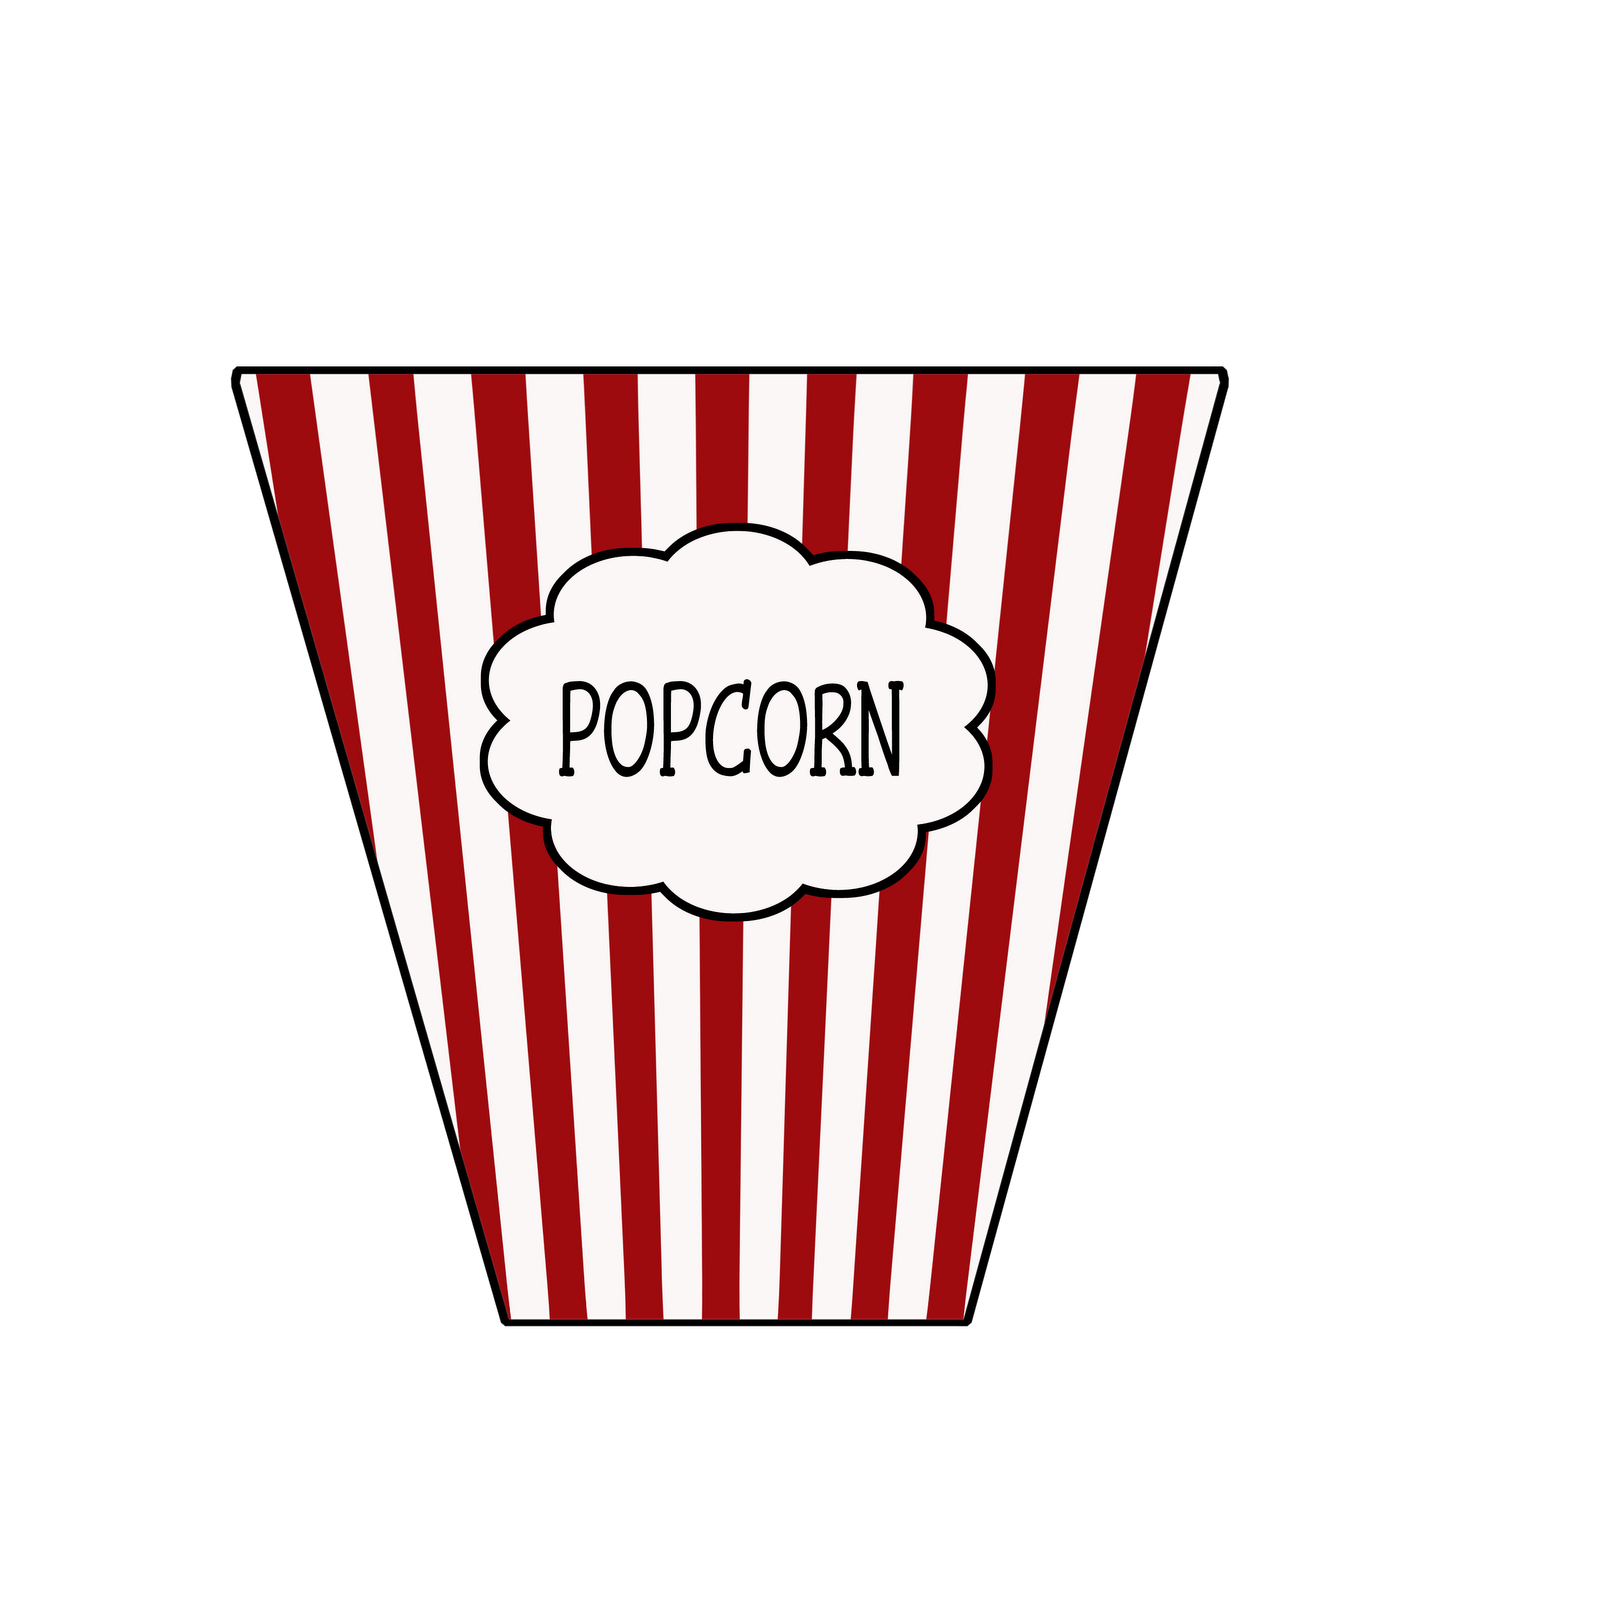 Carnival clipart popcorn container Clipart Clipart Images Panda Popcorn